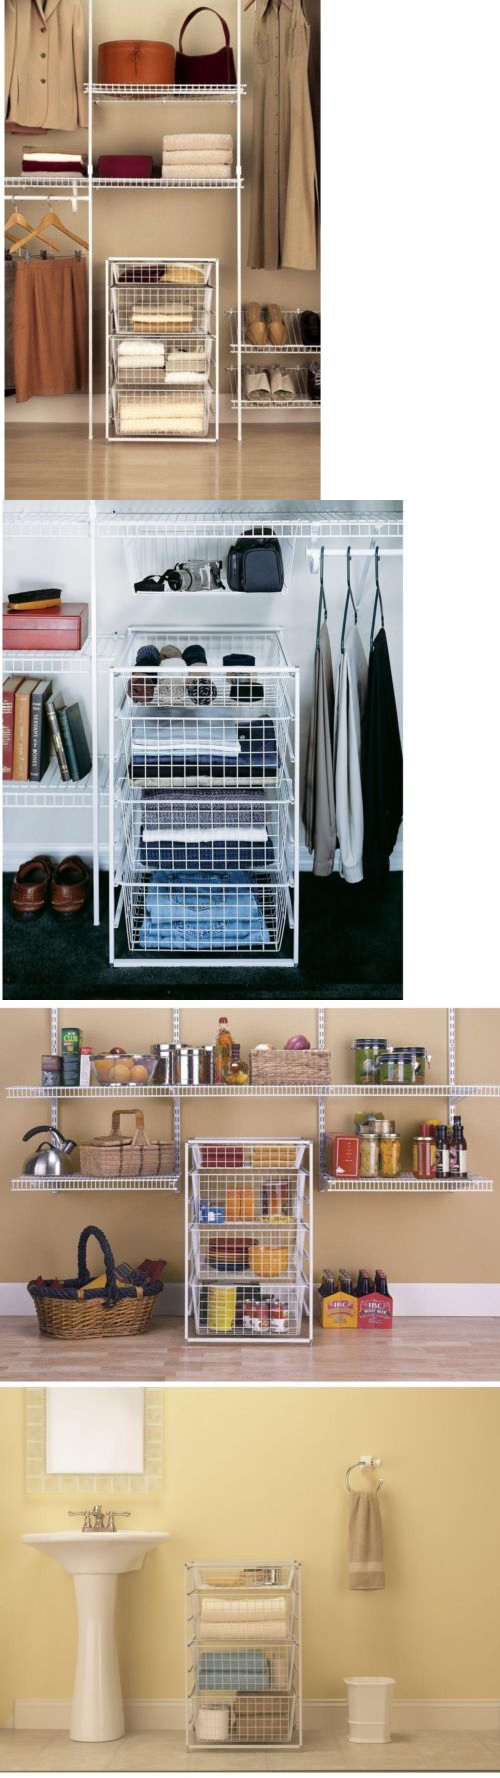 Storage Bins And Baskets 159898: Closet Storage Containers Office Laundry  Room Pantry Organizer Basket Closetmaid